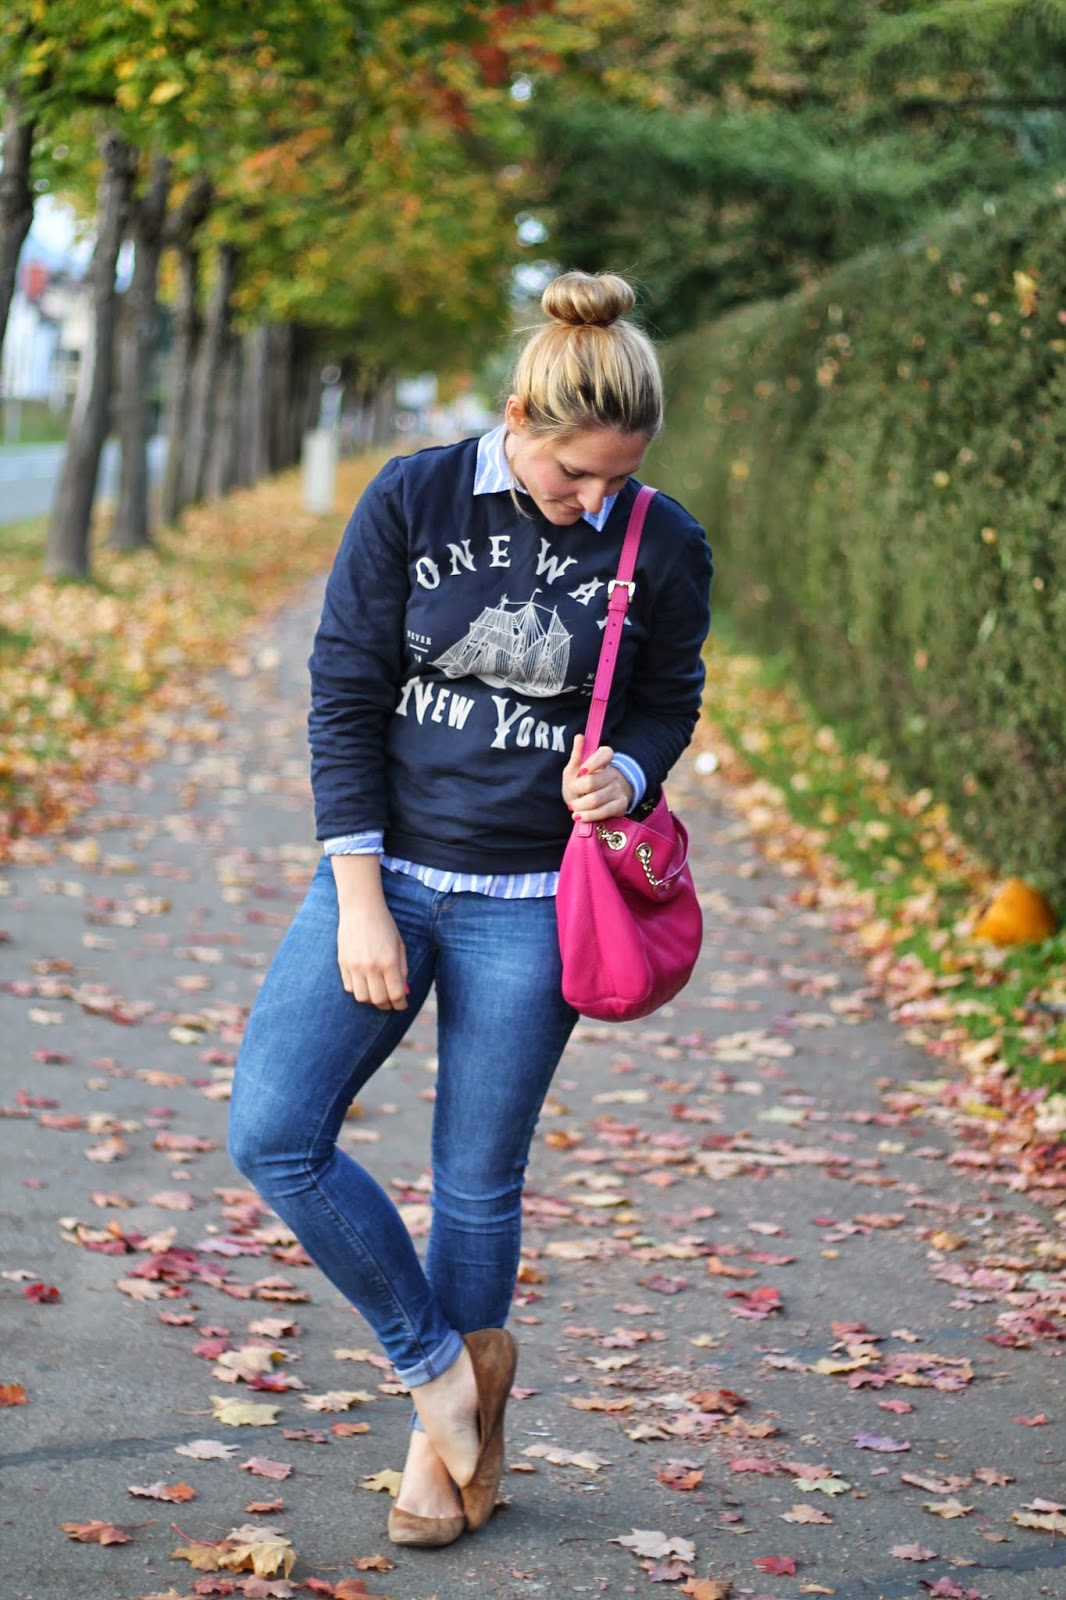 Fashionblogger Austria / Österreich / Deutsch / German / Kärnten / Carinthia / Klagenfurt / Köttmannsdorf / Spring Look / Classy / Edgy / Autumn / Autumn Style 2014 / Autumn Look / Fashionista Look / Blue Sweater Blauer Pullover / White  Blue Blouse H&M Weiß Blaues Hemd / Pink Michael Kors Jet Set Chain Bag Tasche / Dutt / Blogger Dutt/ Beige J. Crew Flats Ballerinas / Tattoo / Glaube Liebe Hoffnung / Love Faith Hope / Kunststätte Klagenfurt / Fashionblogger Kärnten /